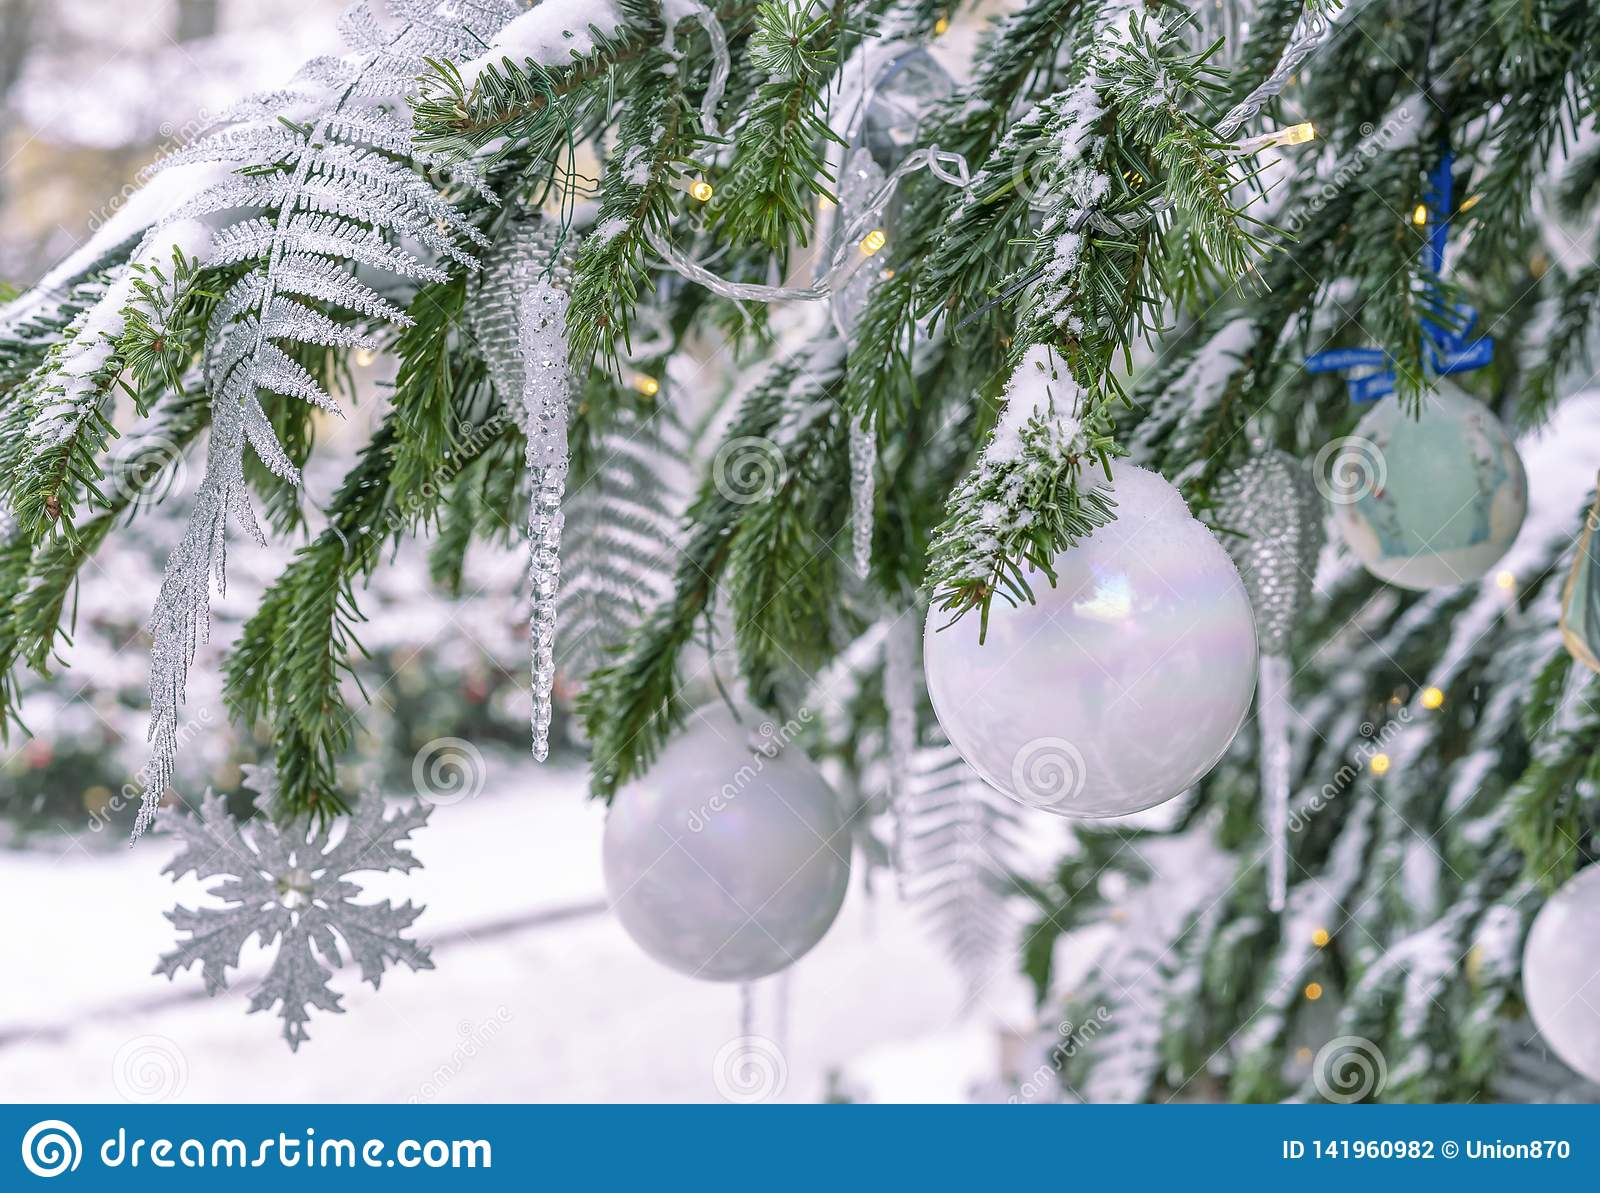 Icicles For Christmas Trees.The Snow Covered Christmas Tree Is Decorated With White